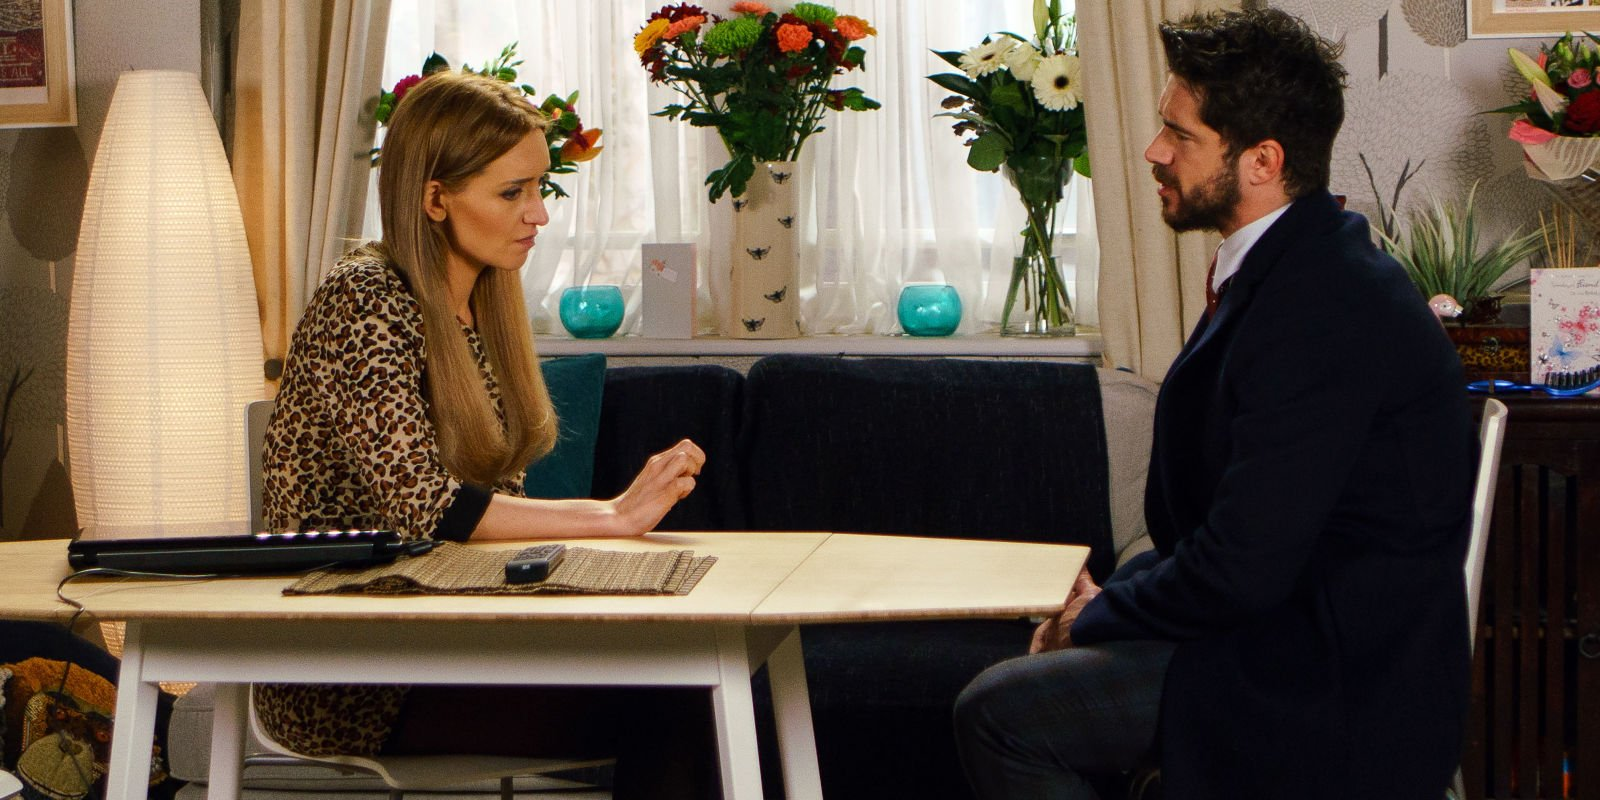 Coronation Street boss reveals Adam Barlow will be involved in Eva Price's exit story